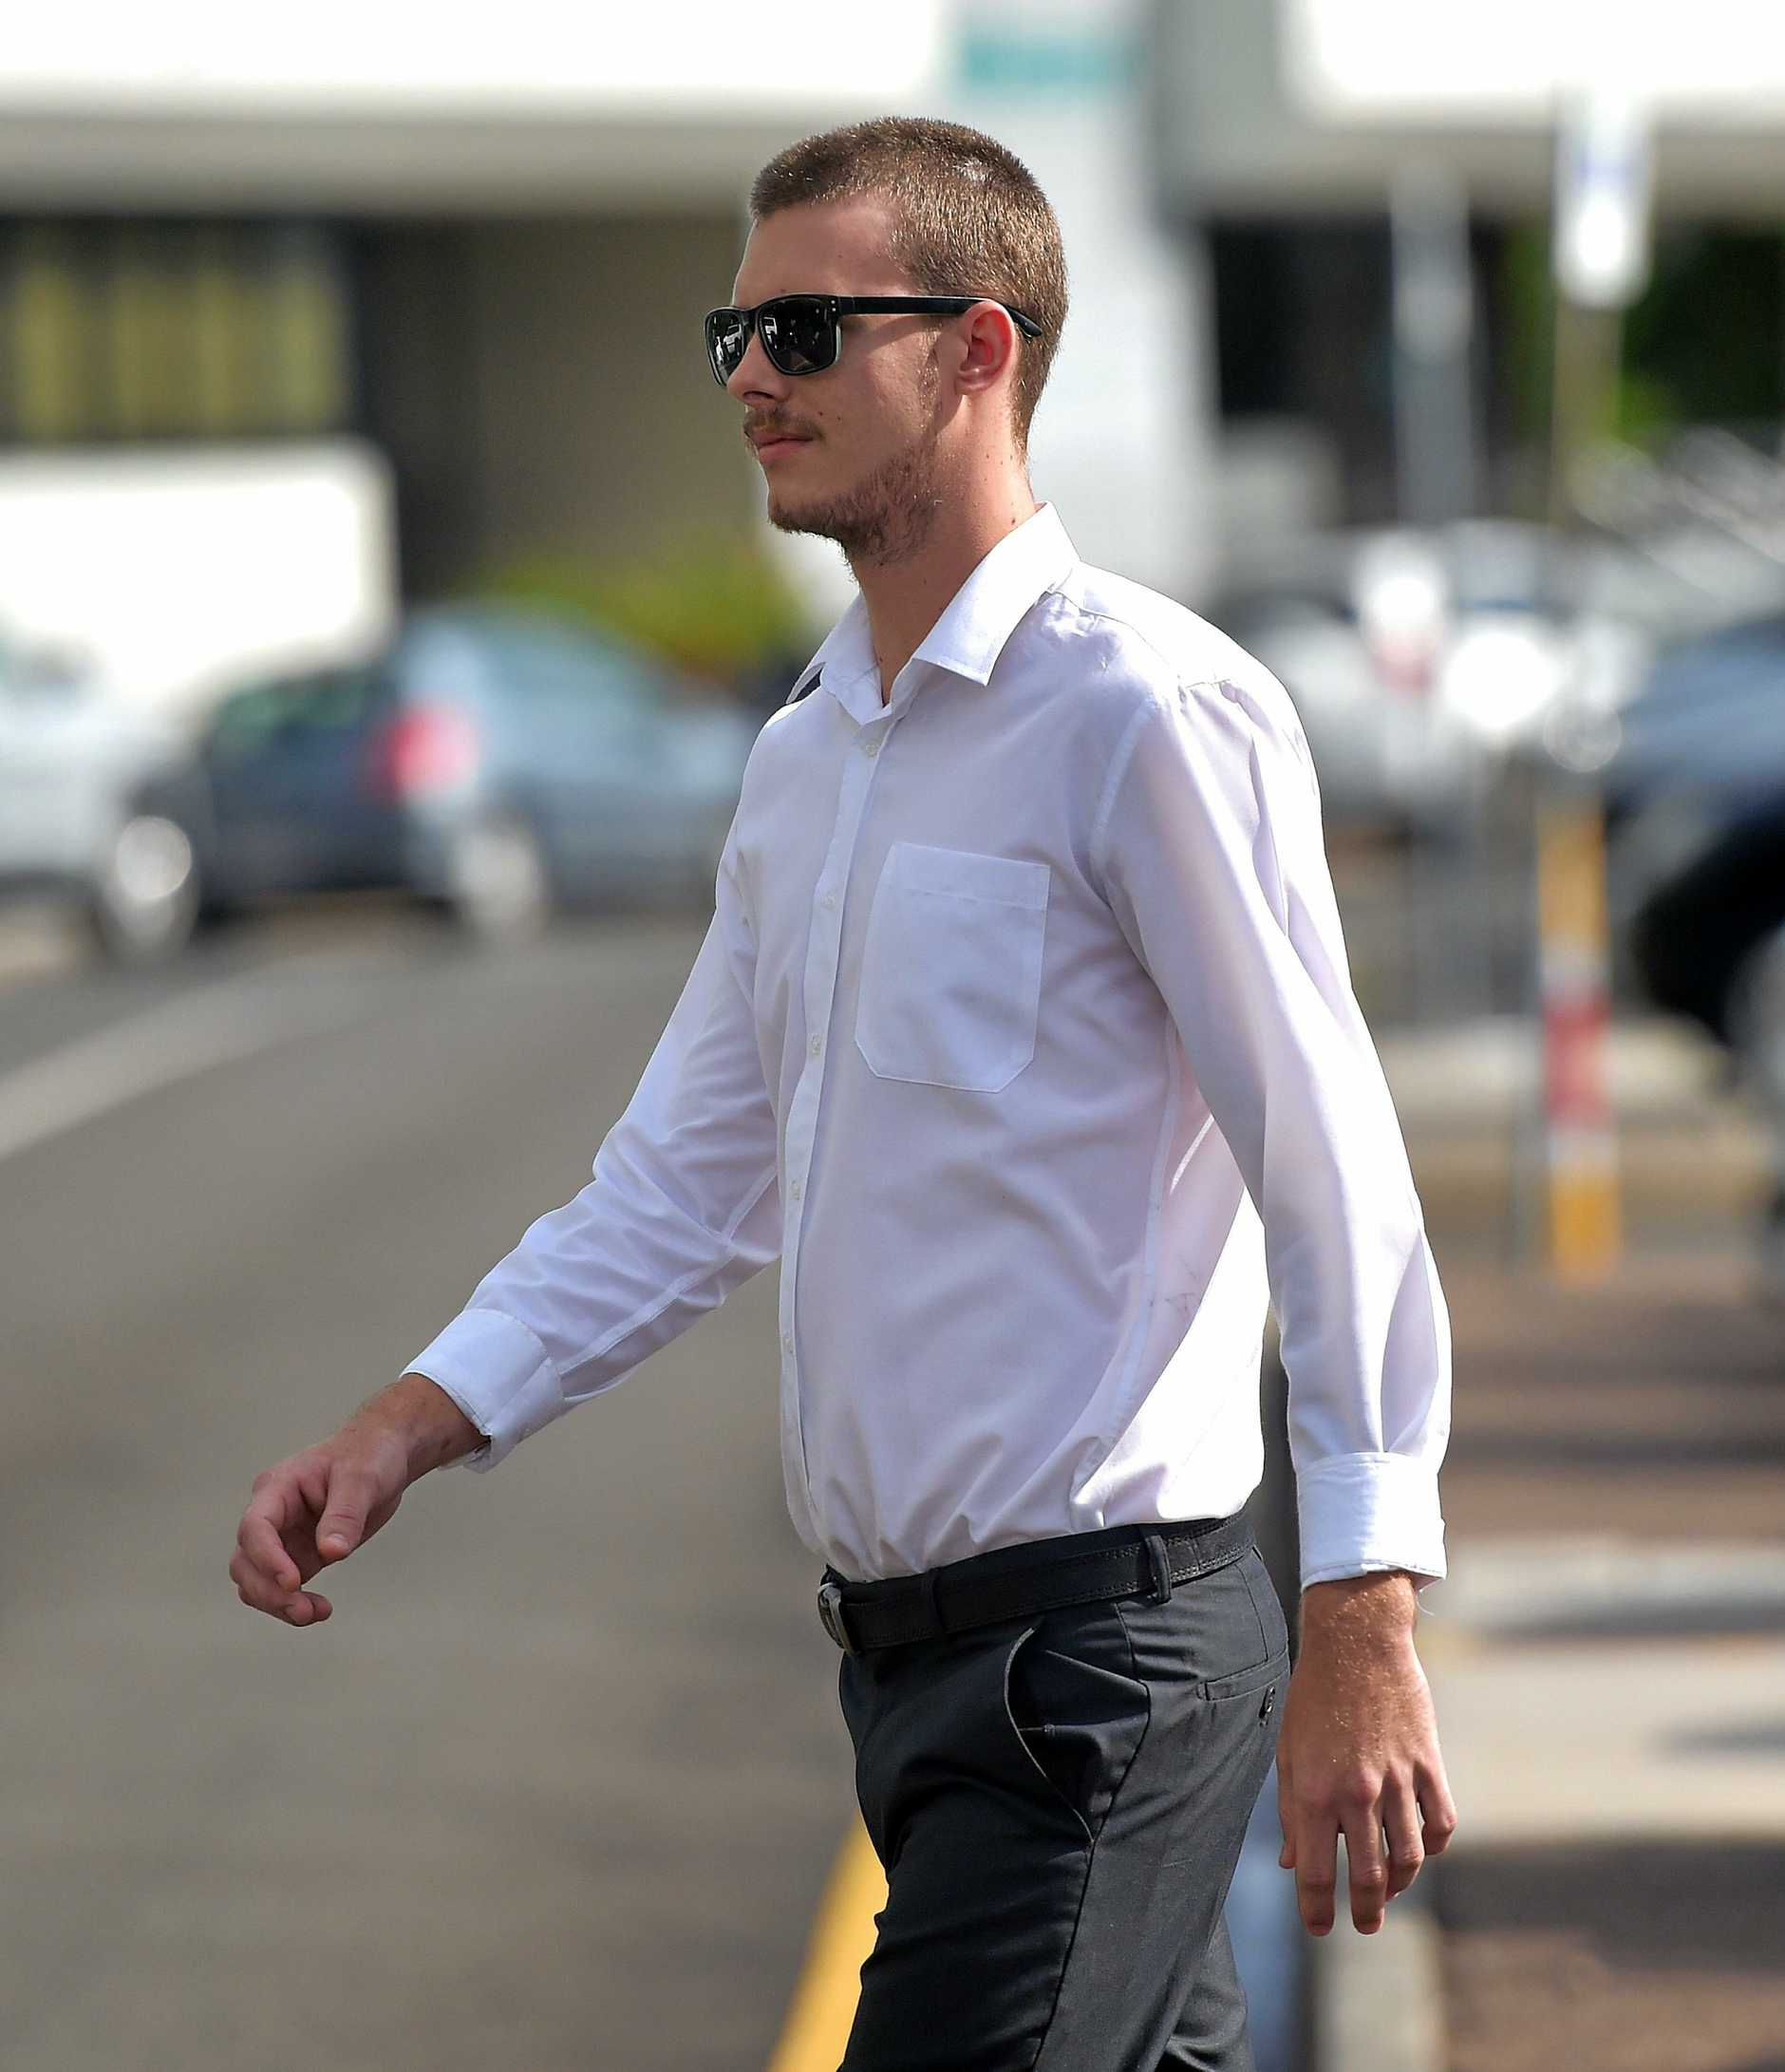 Jett Malcolm Morris was charged with one count of dangerous operation of a vehicle causing death or grievous bodily harm whilst adversely affected by an intoxicating substance after the January 6 crash.Morris, of Landsborough, was also charged with driving under the influence of liquor.